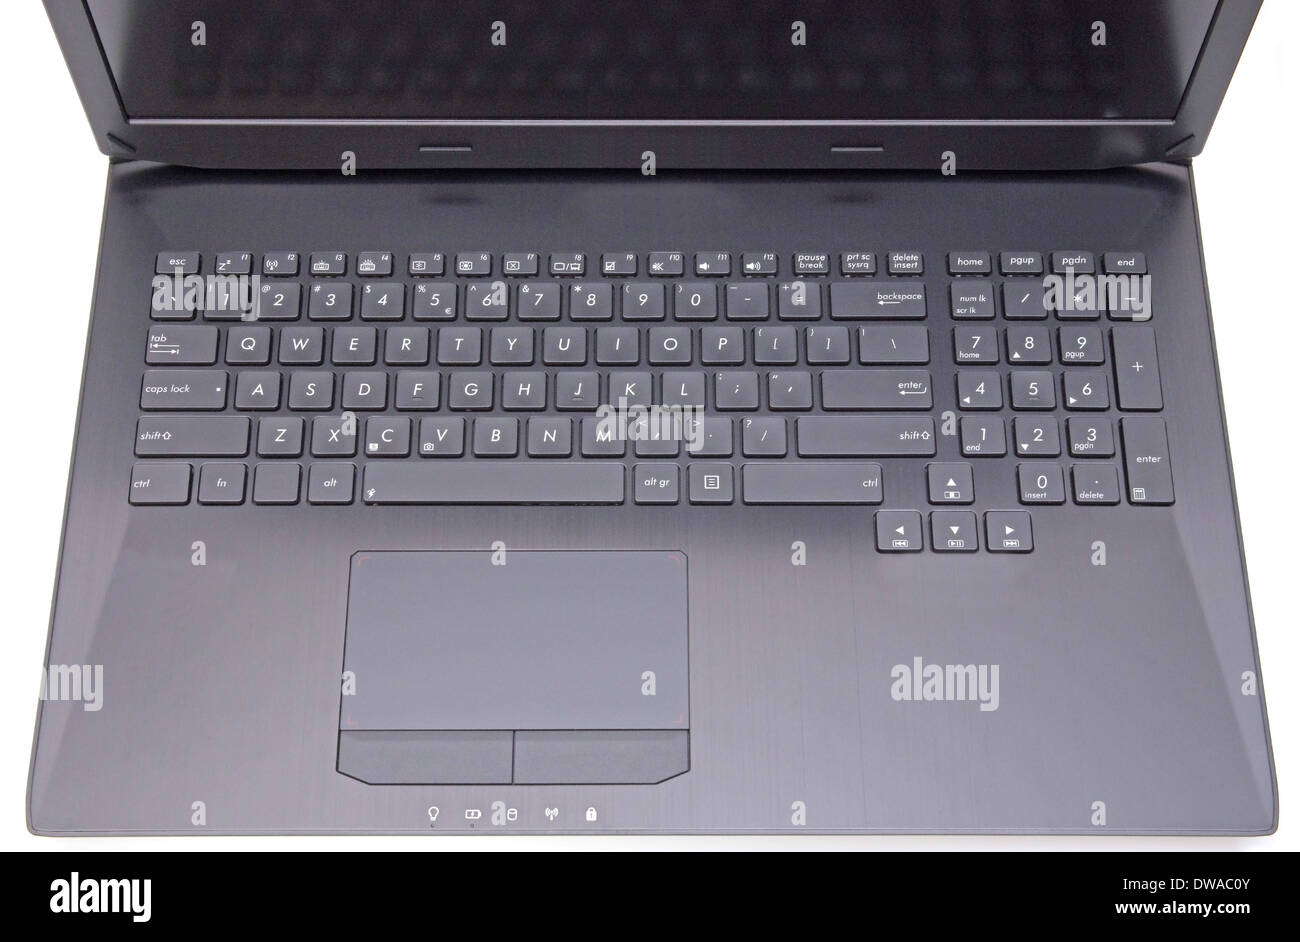 Close image of a laptop: keyboard and touchpad - Stock Image